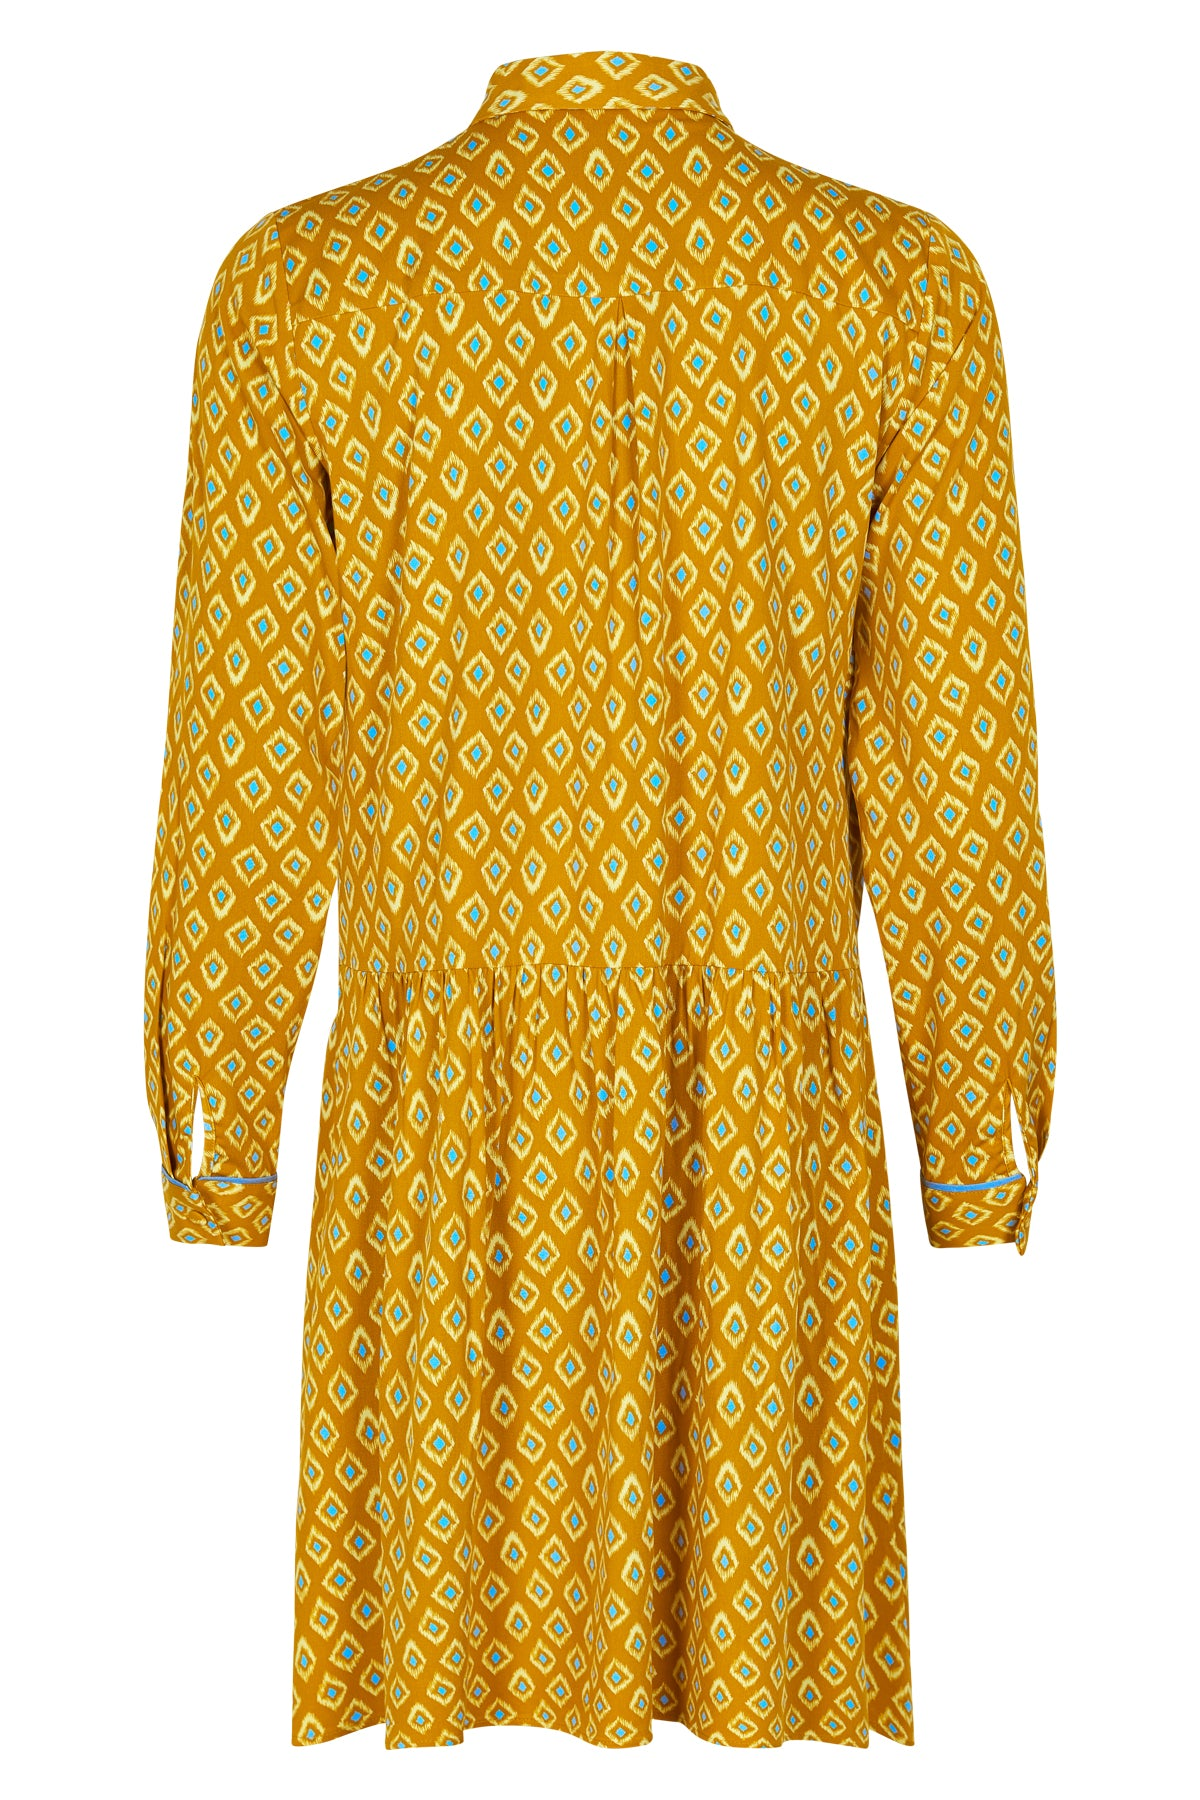 Nuailani Dress -  Mustard Geometric Pattern